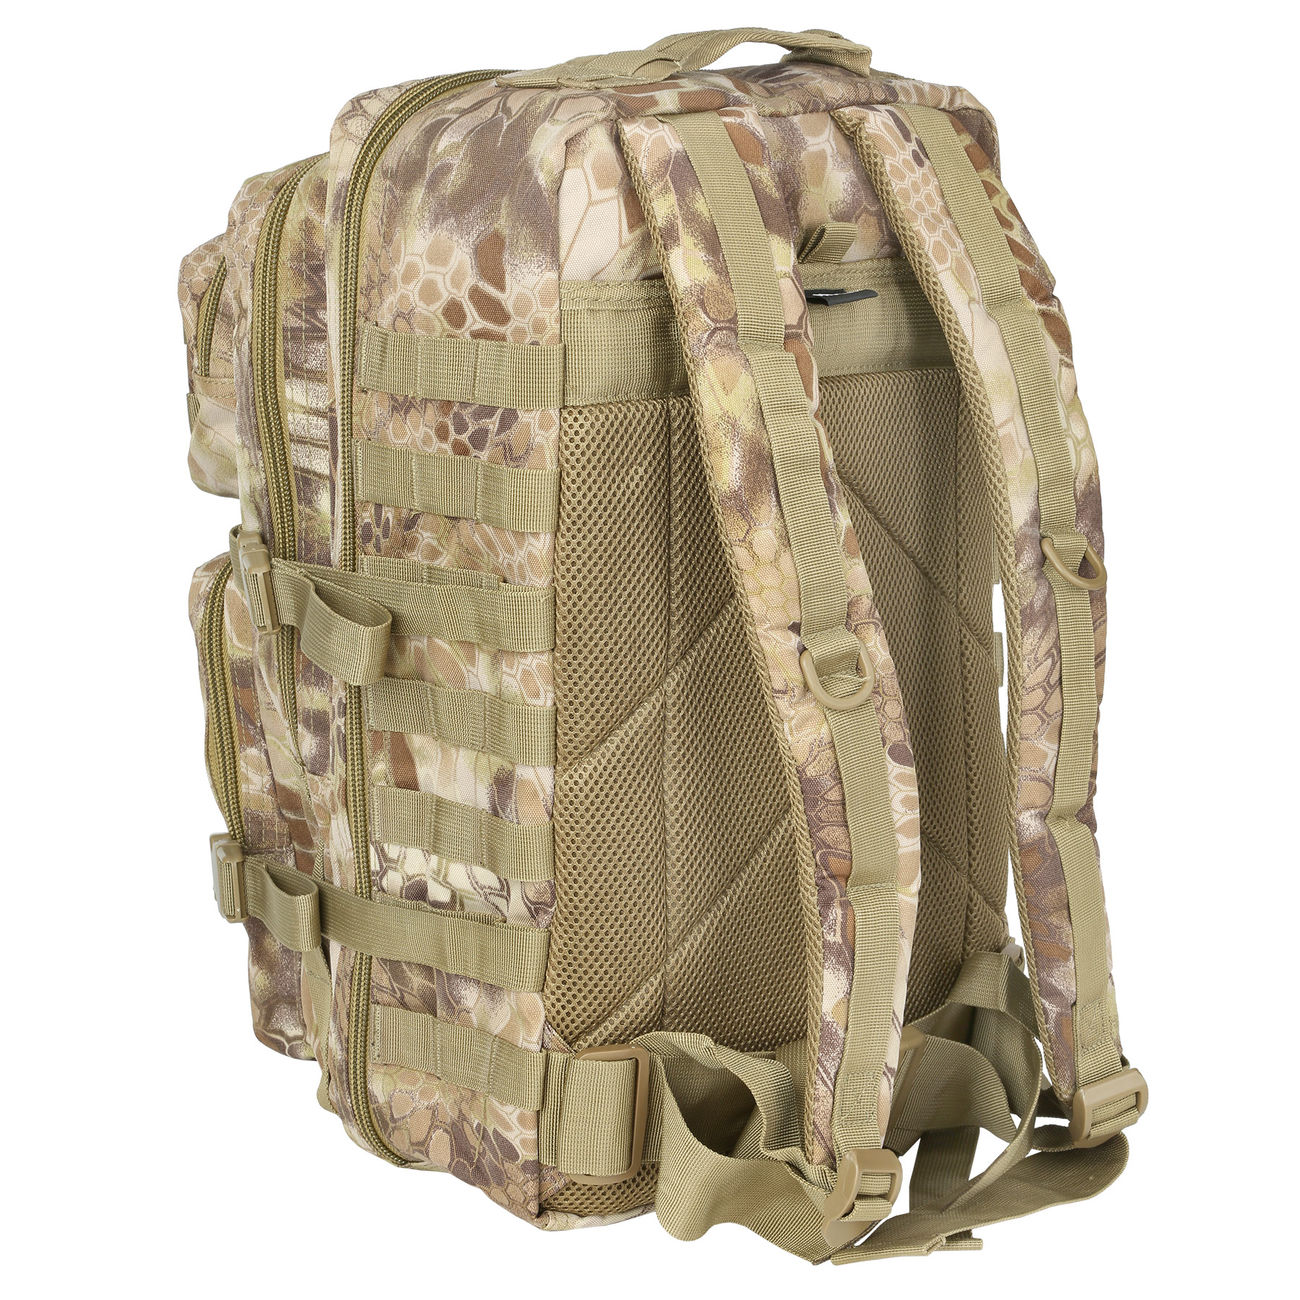 Mil-Tec Rucksack US Assault Pack II 40 Liter mandra tan 3